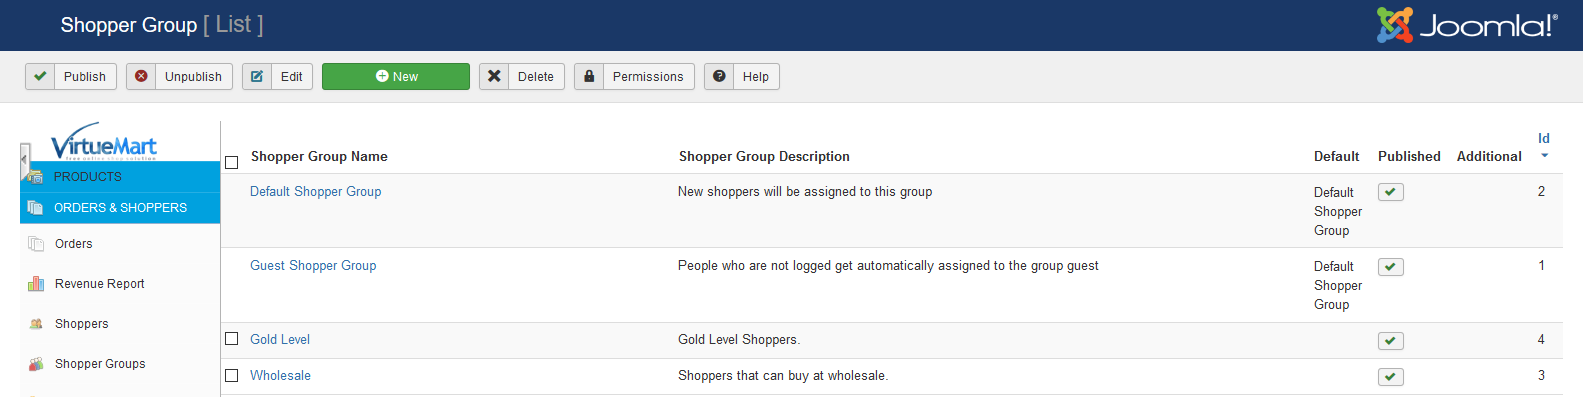 shoppergroups shoppergroup list screen